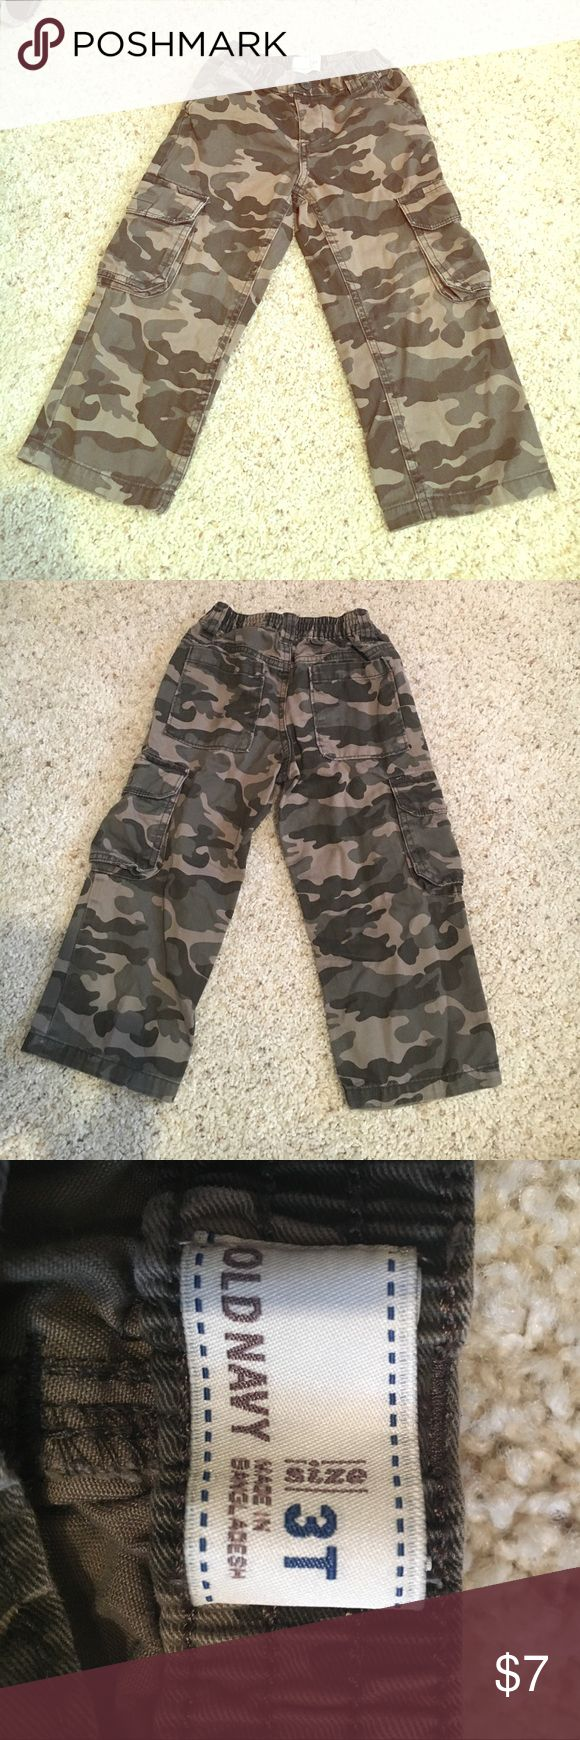 Old Navy Boys Camo Pants! Boys Old Navy Camouflage Cargo pants! Size 3T Old Navy Bottoms Casual